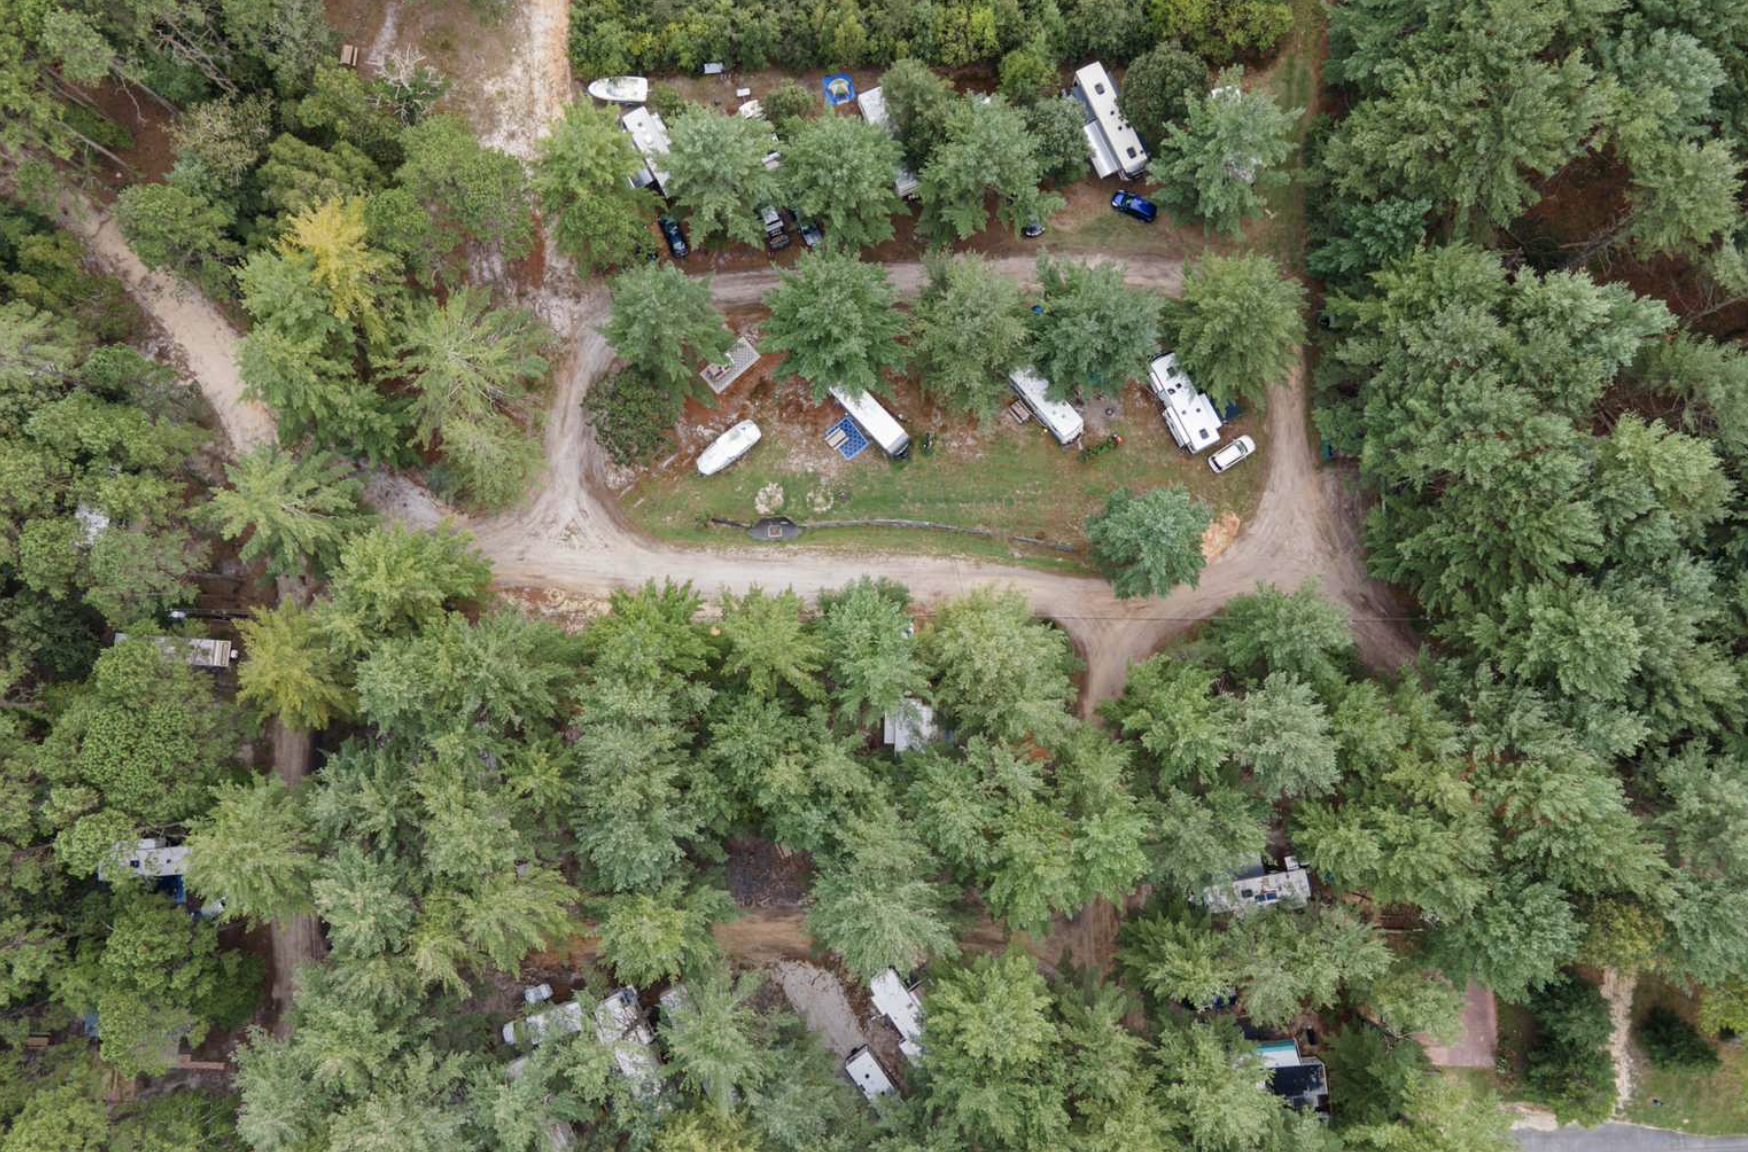 RVs parked in woods at Holly Acres campground